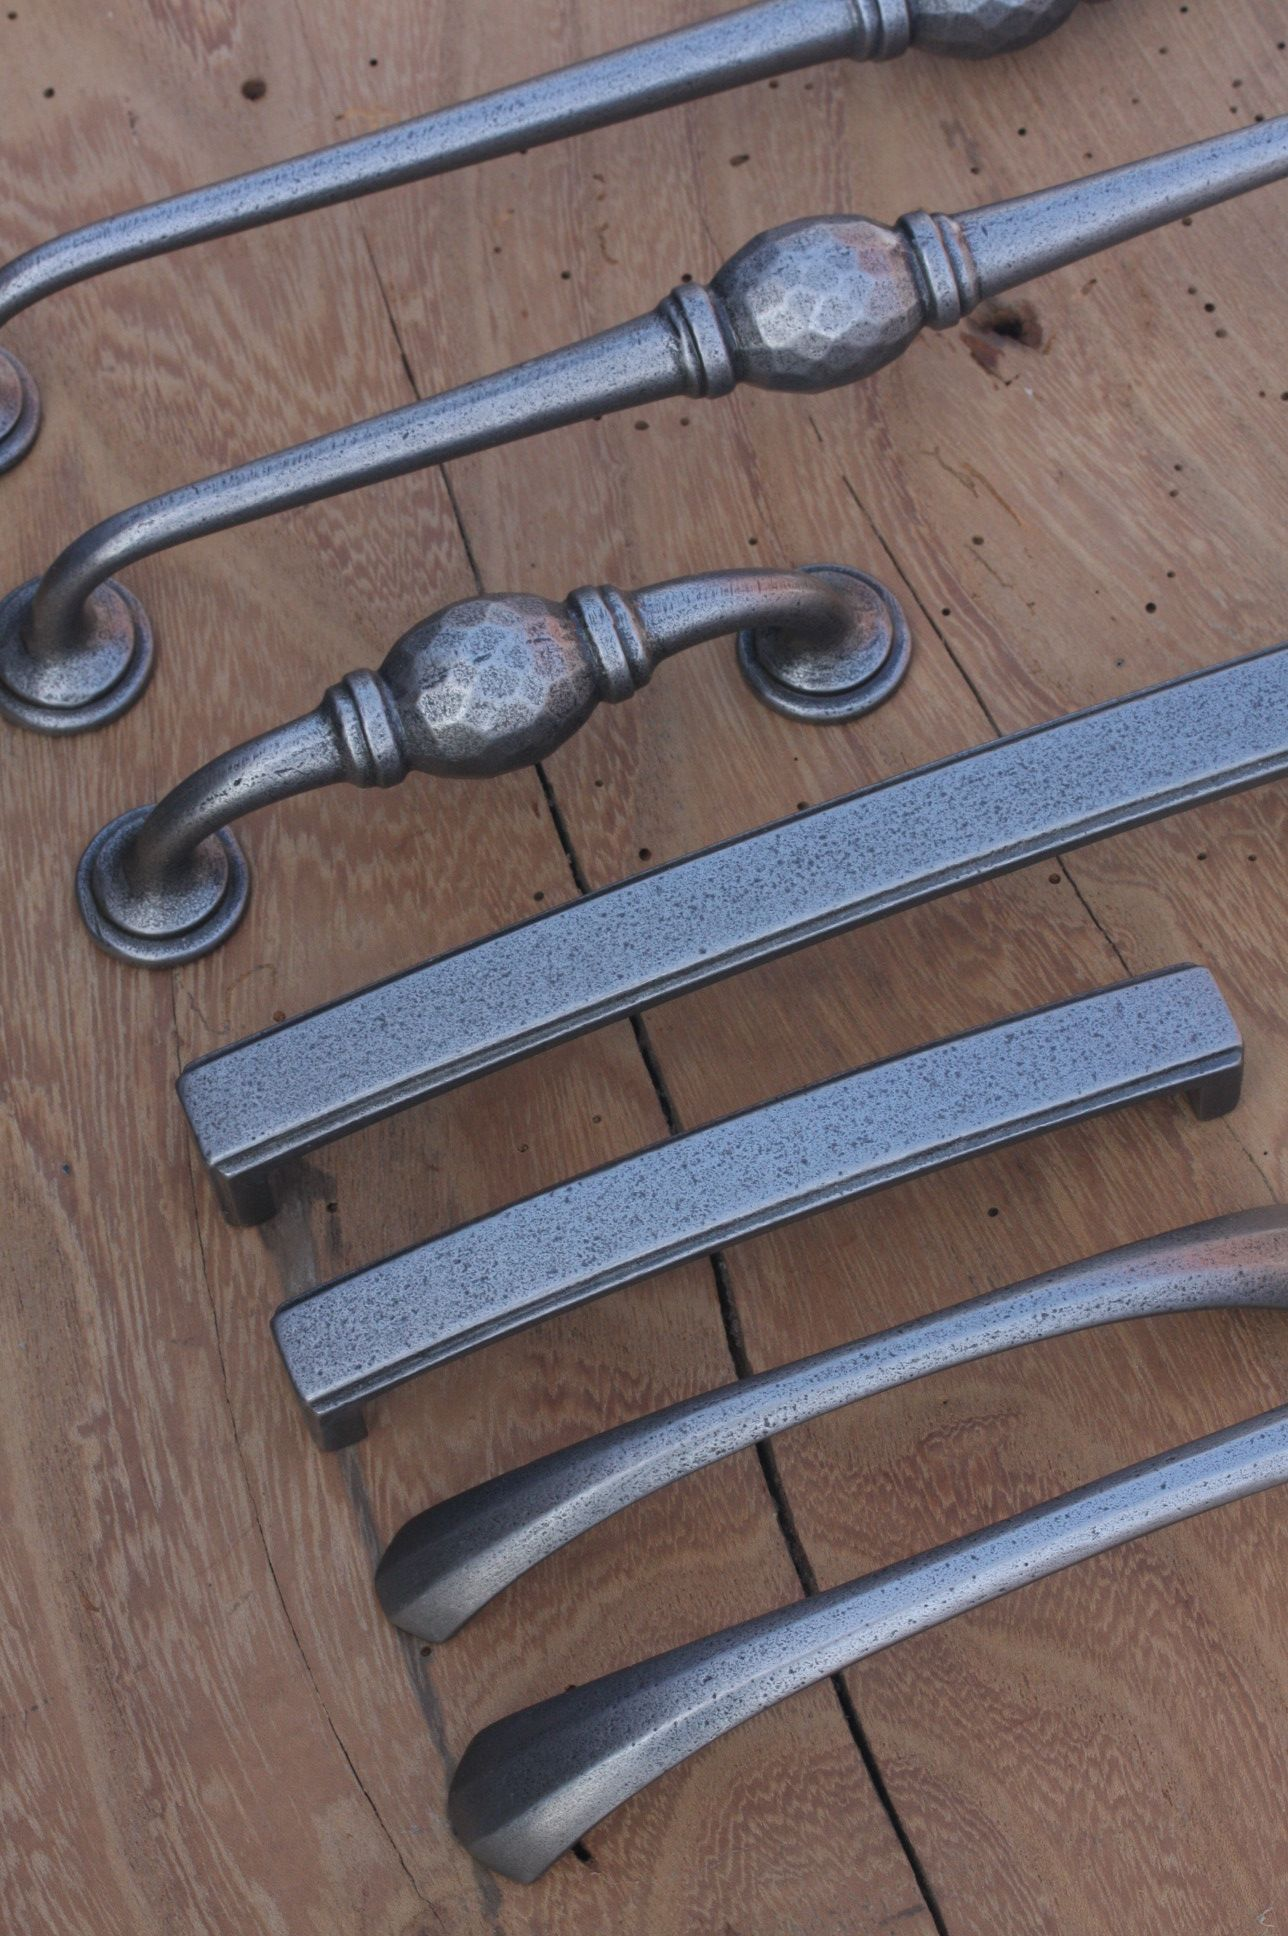 Pewter Pull Handles Are Handforged In One Piece Of Steel With Gothic Or  Bean Shaped Ends. Three Sizes To Suit As Cabinet Handles, Drawer Handles,  ...